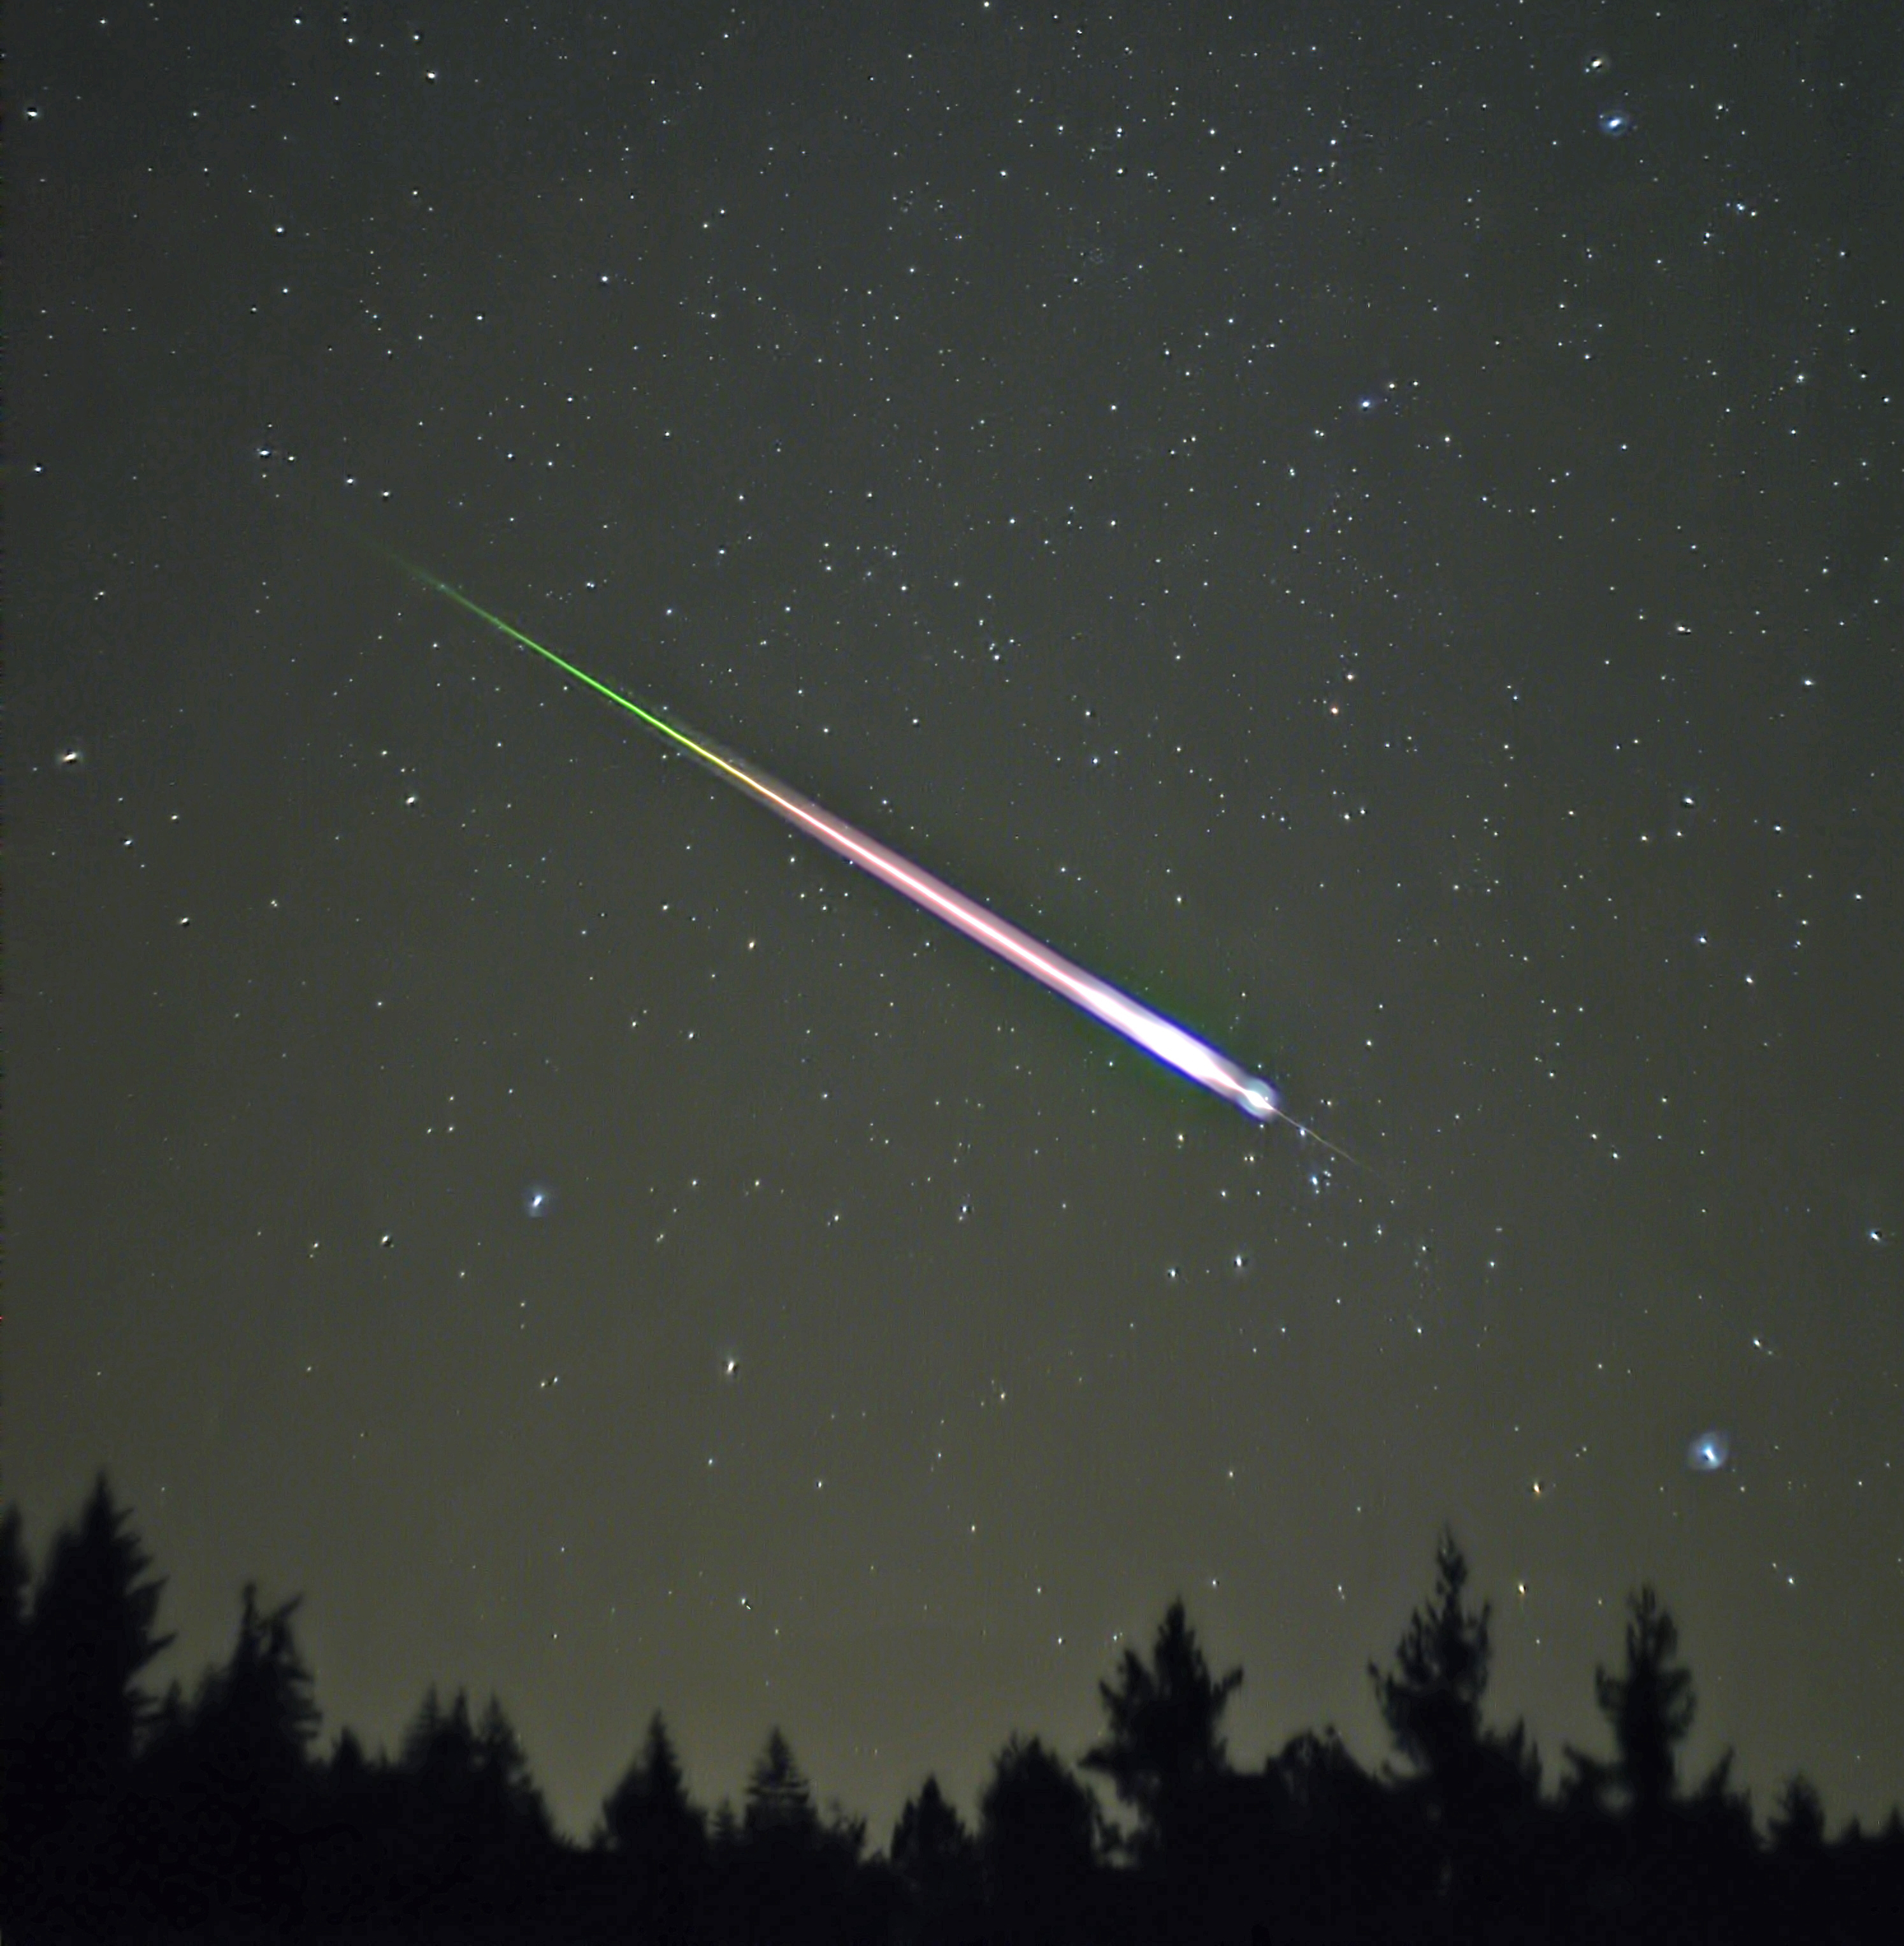 A meteor travels through earth's atmosphere